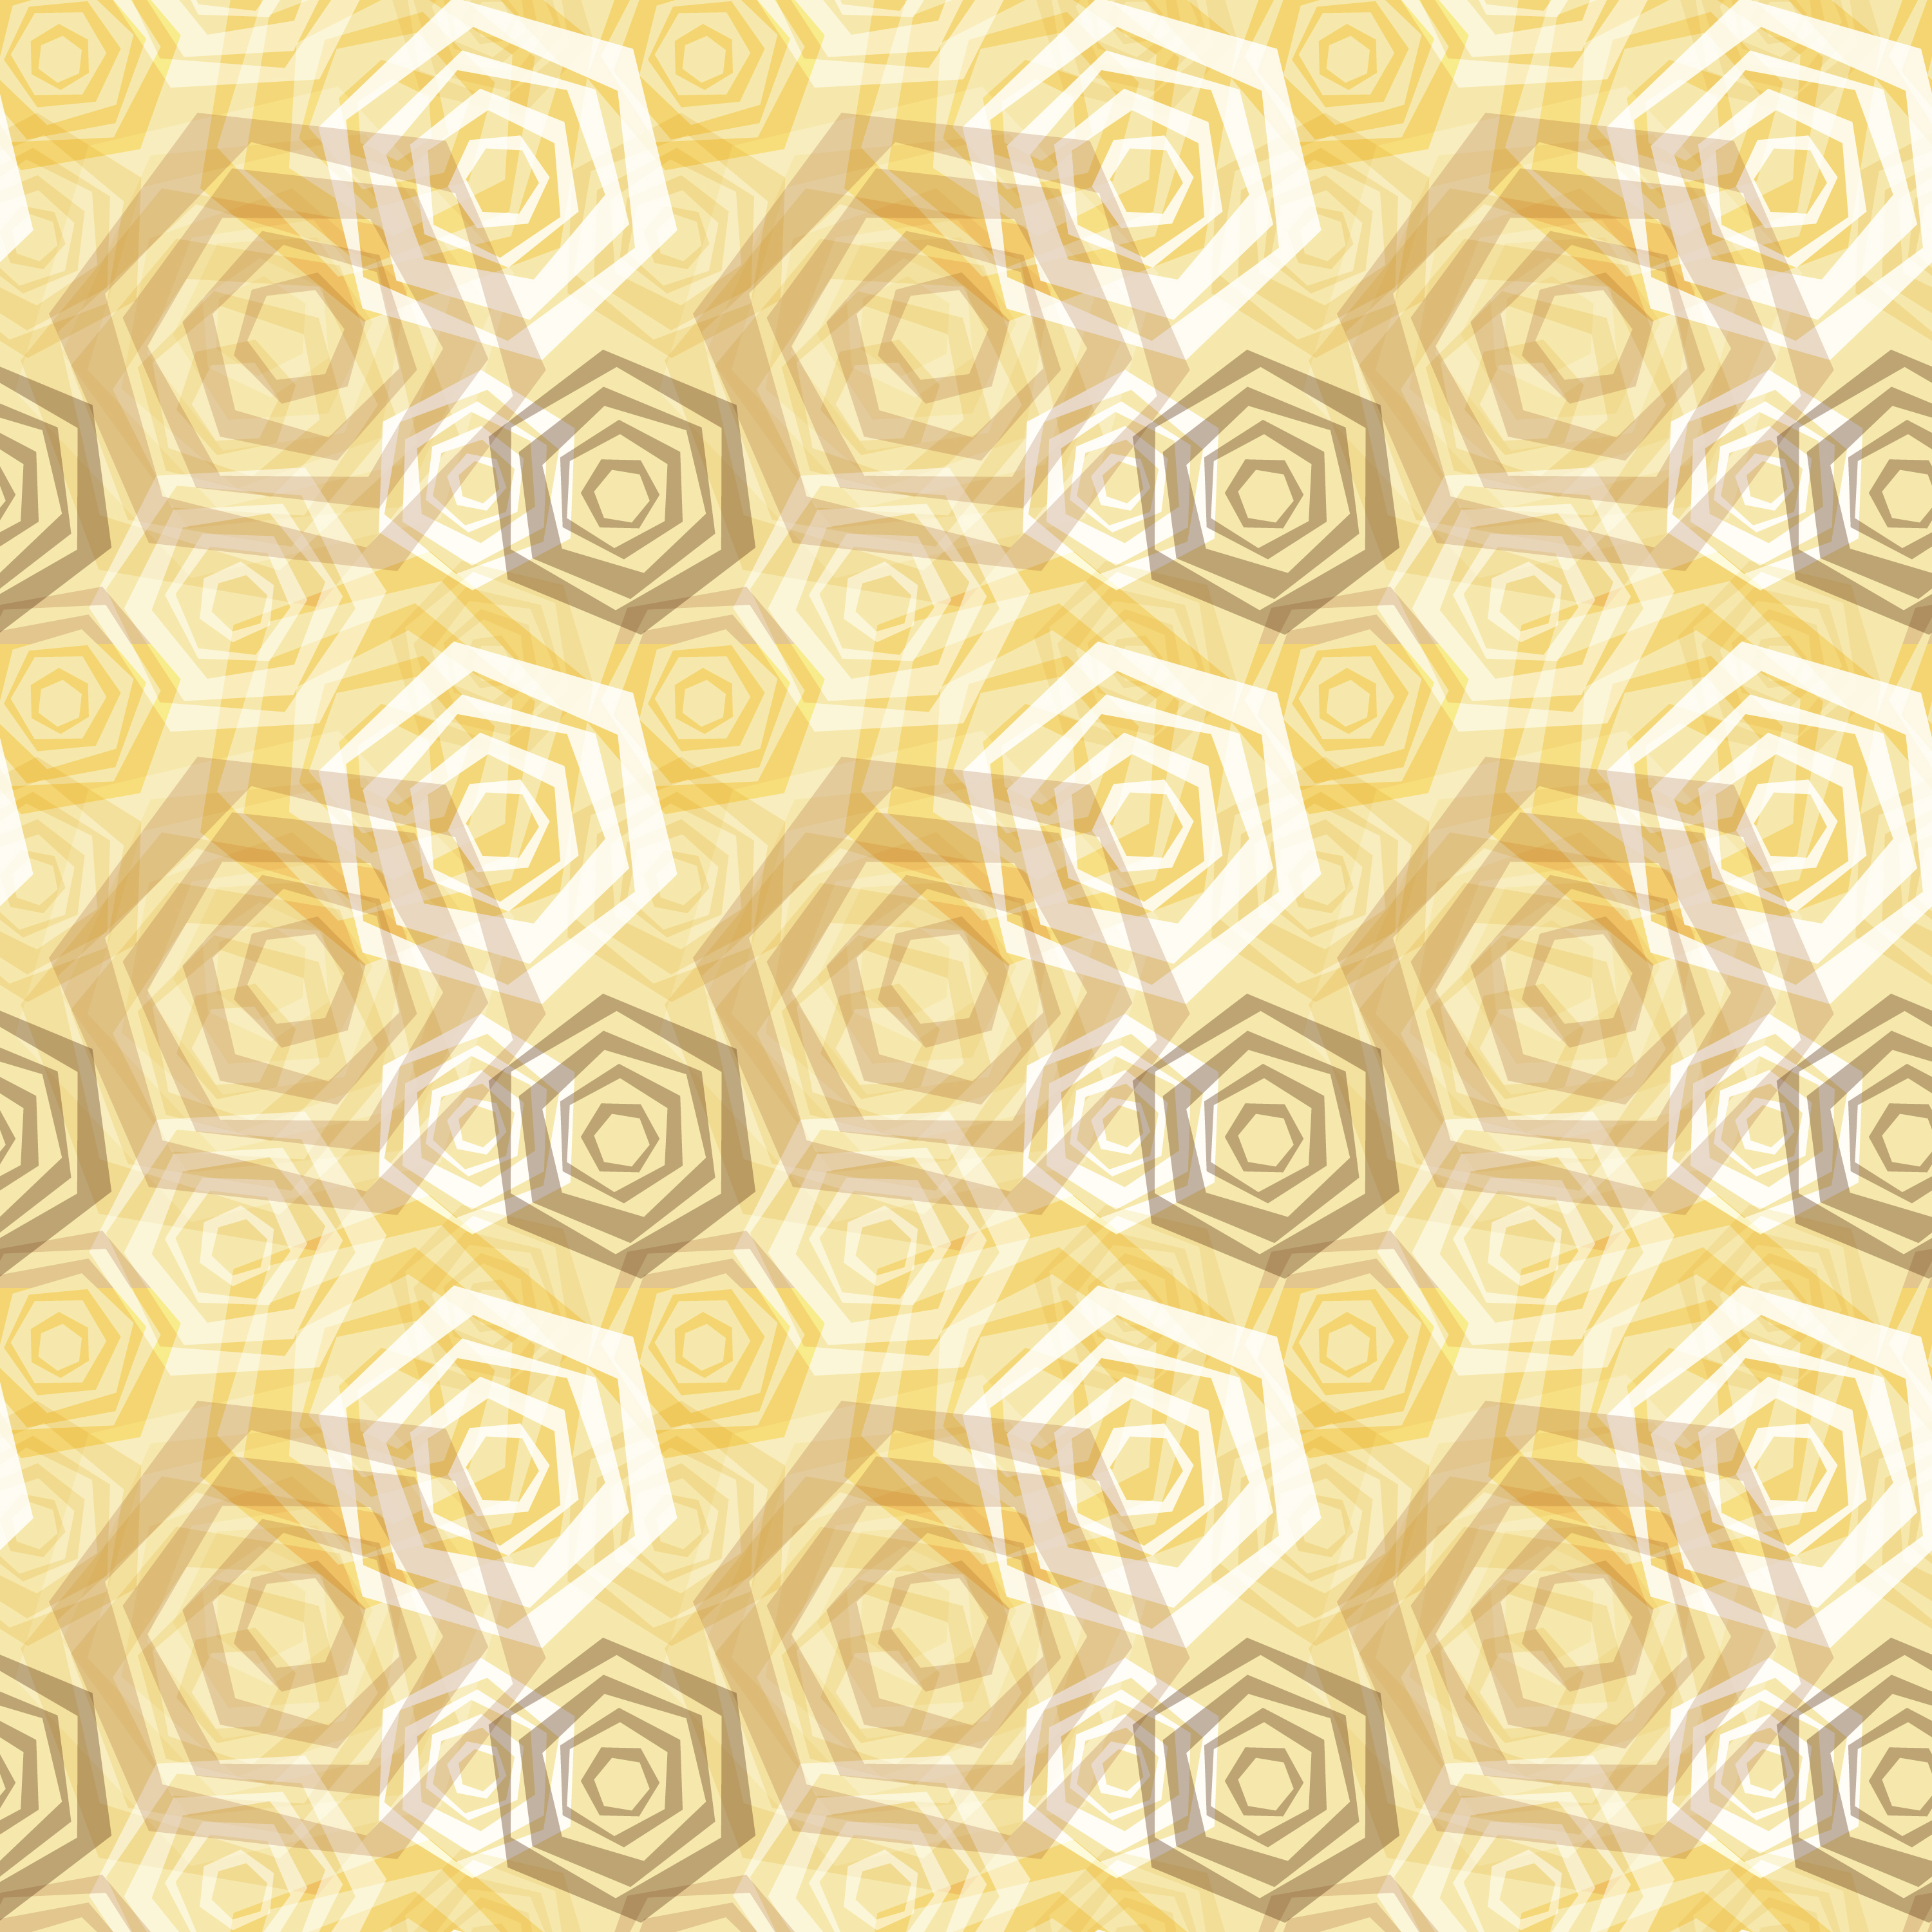 Seamless Vector Patterns Bundle example image 9